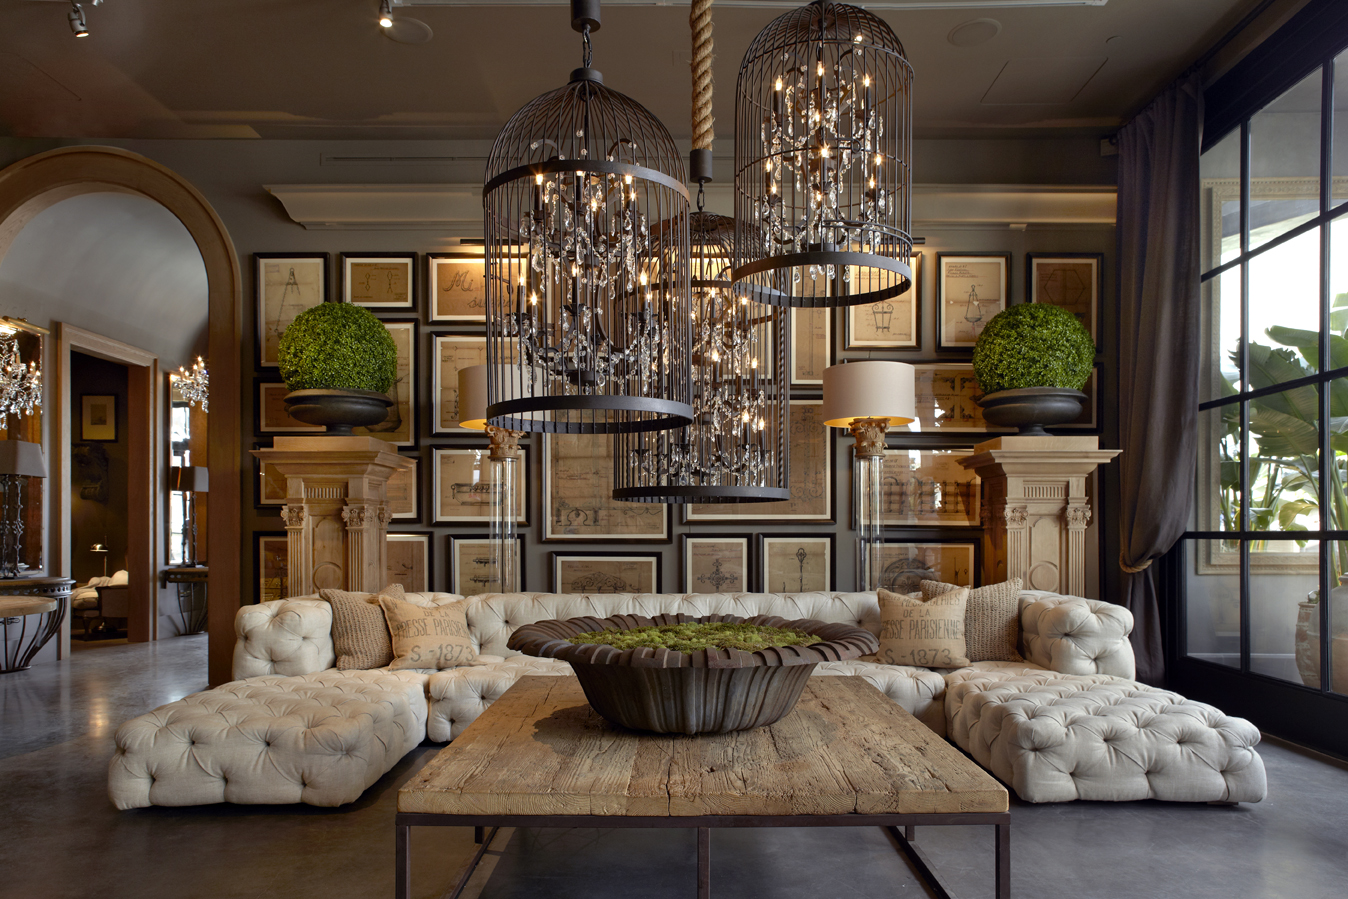 restoration hardware things to do in palm beach